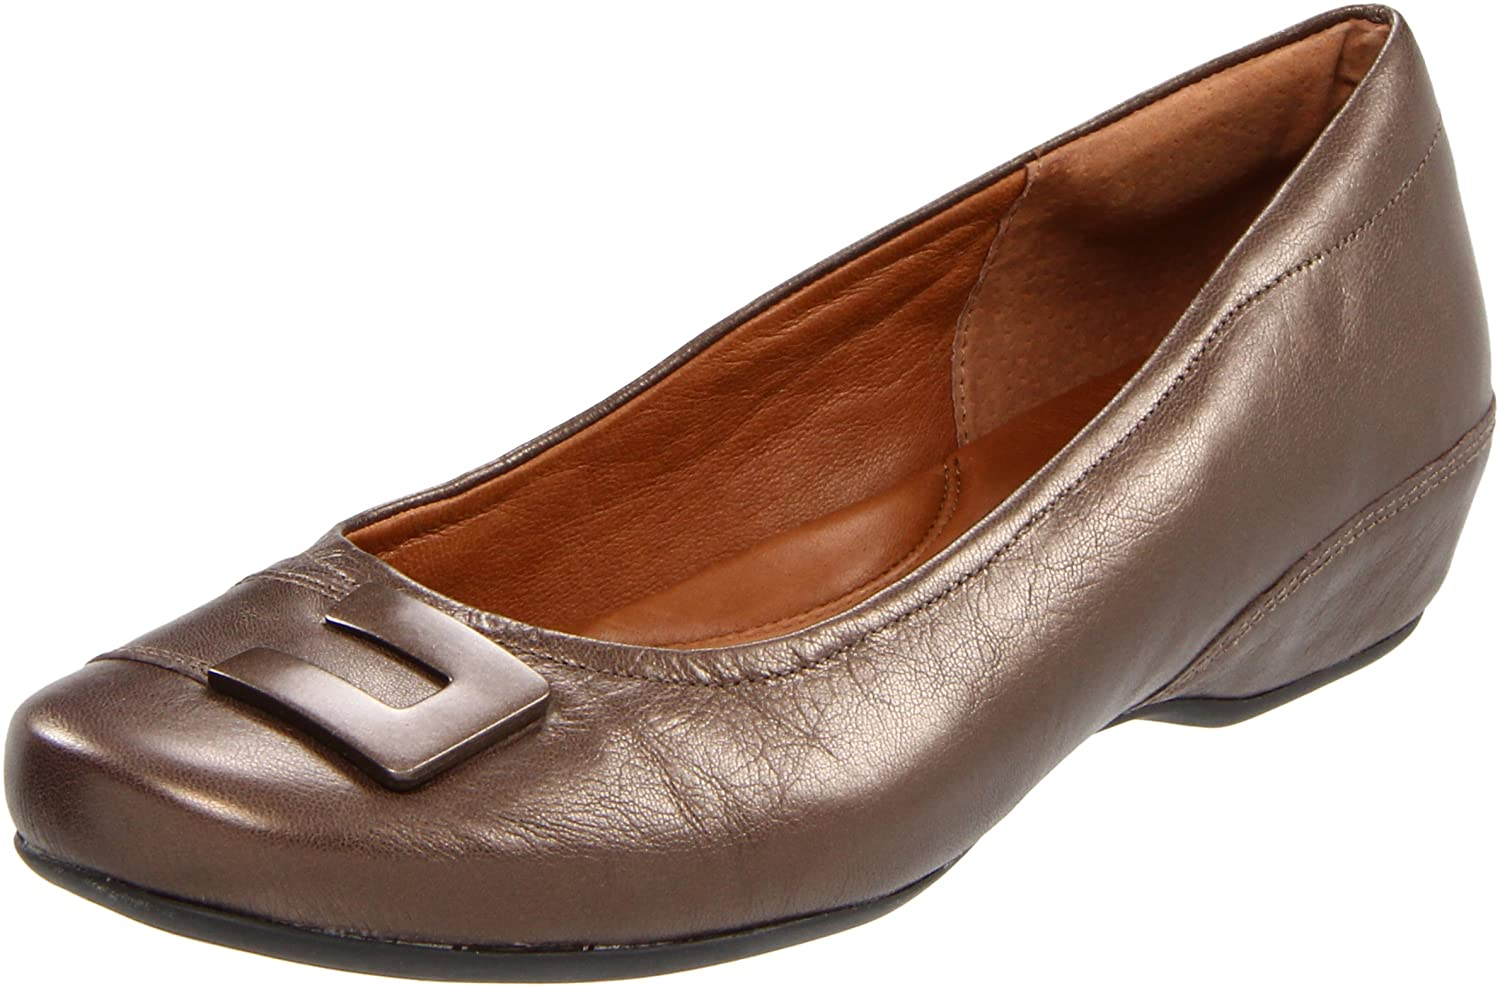 CLARKS Women's Concert Choir Flat B004HVAUOO 7 W US|Brown Metallic Leather